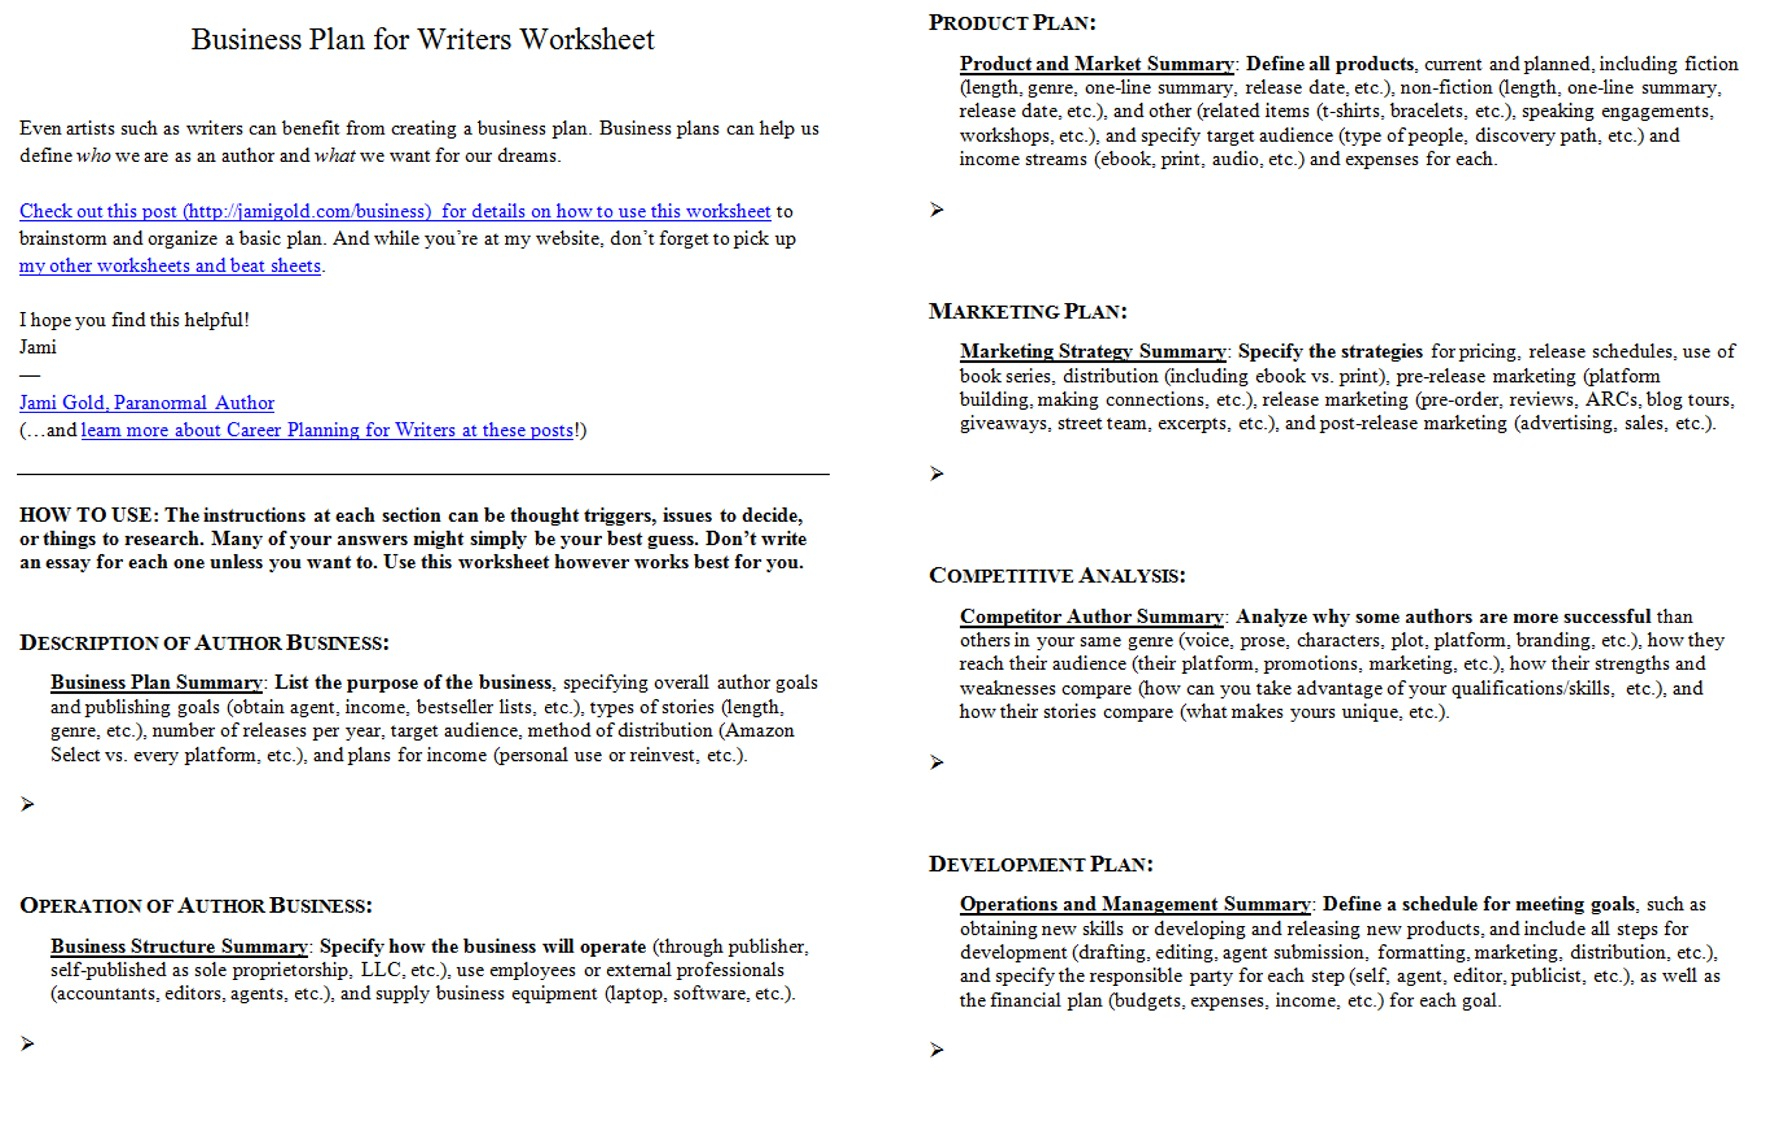 Weirdmailus  Scenic Worksheets For Writers  Jami Gold Paranormal Author With Outstanding Screen Shot Of Both Pages Of The Business Plan For Writers Worksheet With Comely Time Signature Worksheets Also Root Cause Analysis Worksheet In Addition Behavior Modification Worksheets And Color By Number Worksheets For Adults As Well As Greatest Common Factor Worksheets Th Grade Additionally Theme Practice Worksheets From Jamigoldcom With Weirdmailus  Outstanding Worksheets For Writers  Jami Gold Paranormal Author With Comely Screen Shot Of Both Pages Of The Business Plan For Writers Worksheet And Scenic Time Signature Worksheets Also Root Cause Analysis Worksheet In Addition Behavior Modification Worksheets From Jamigoldcom